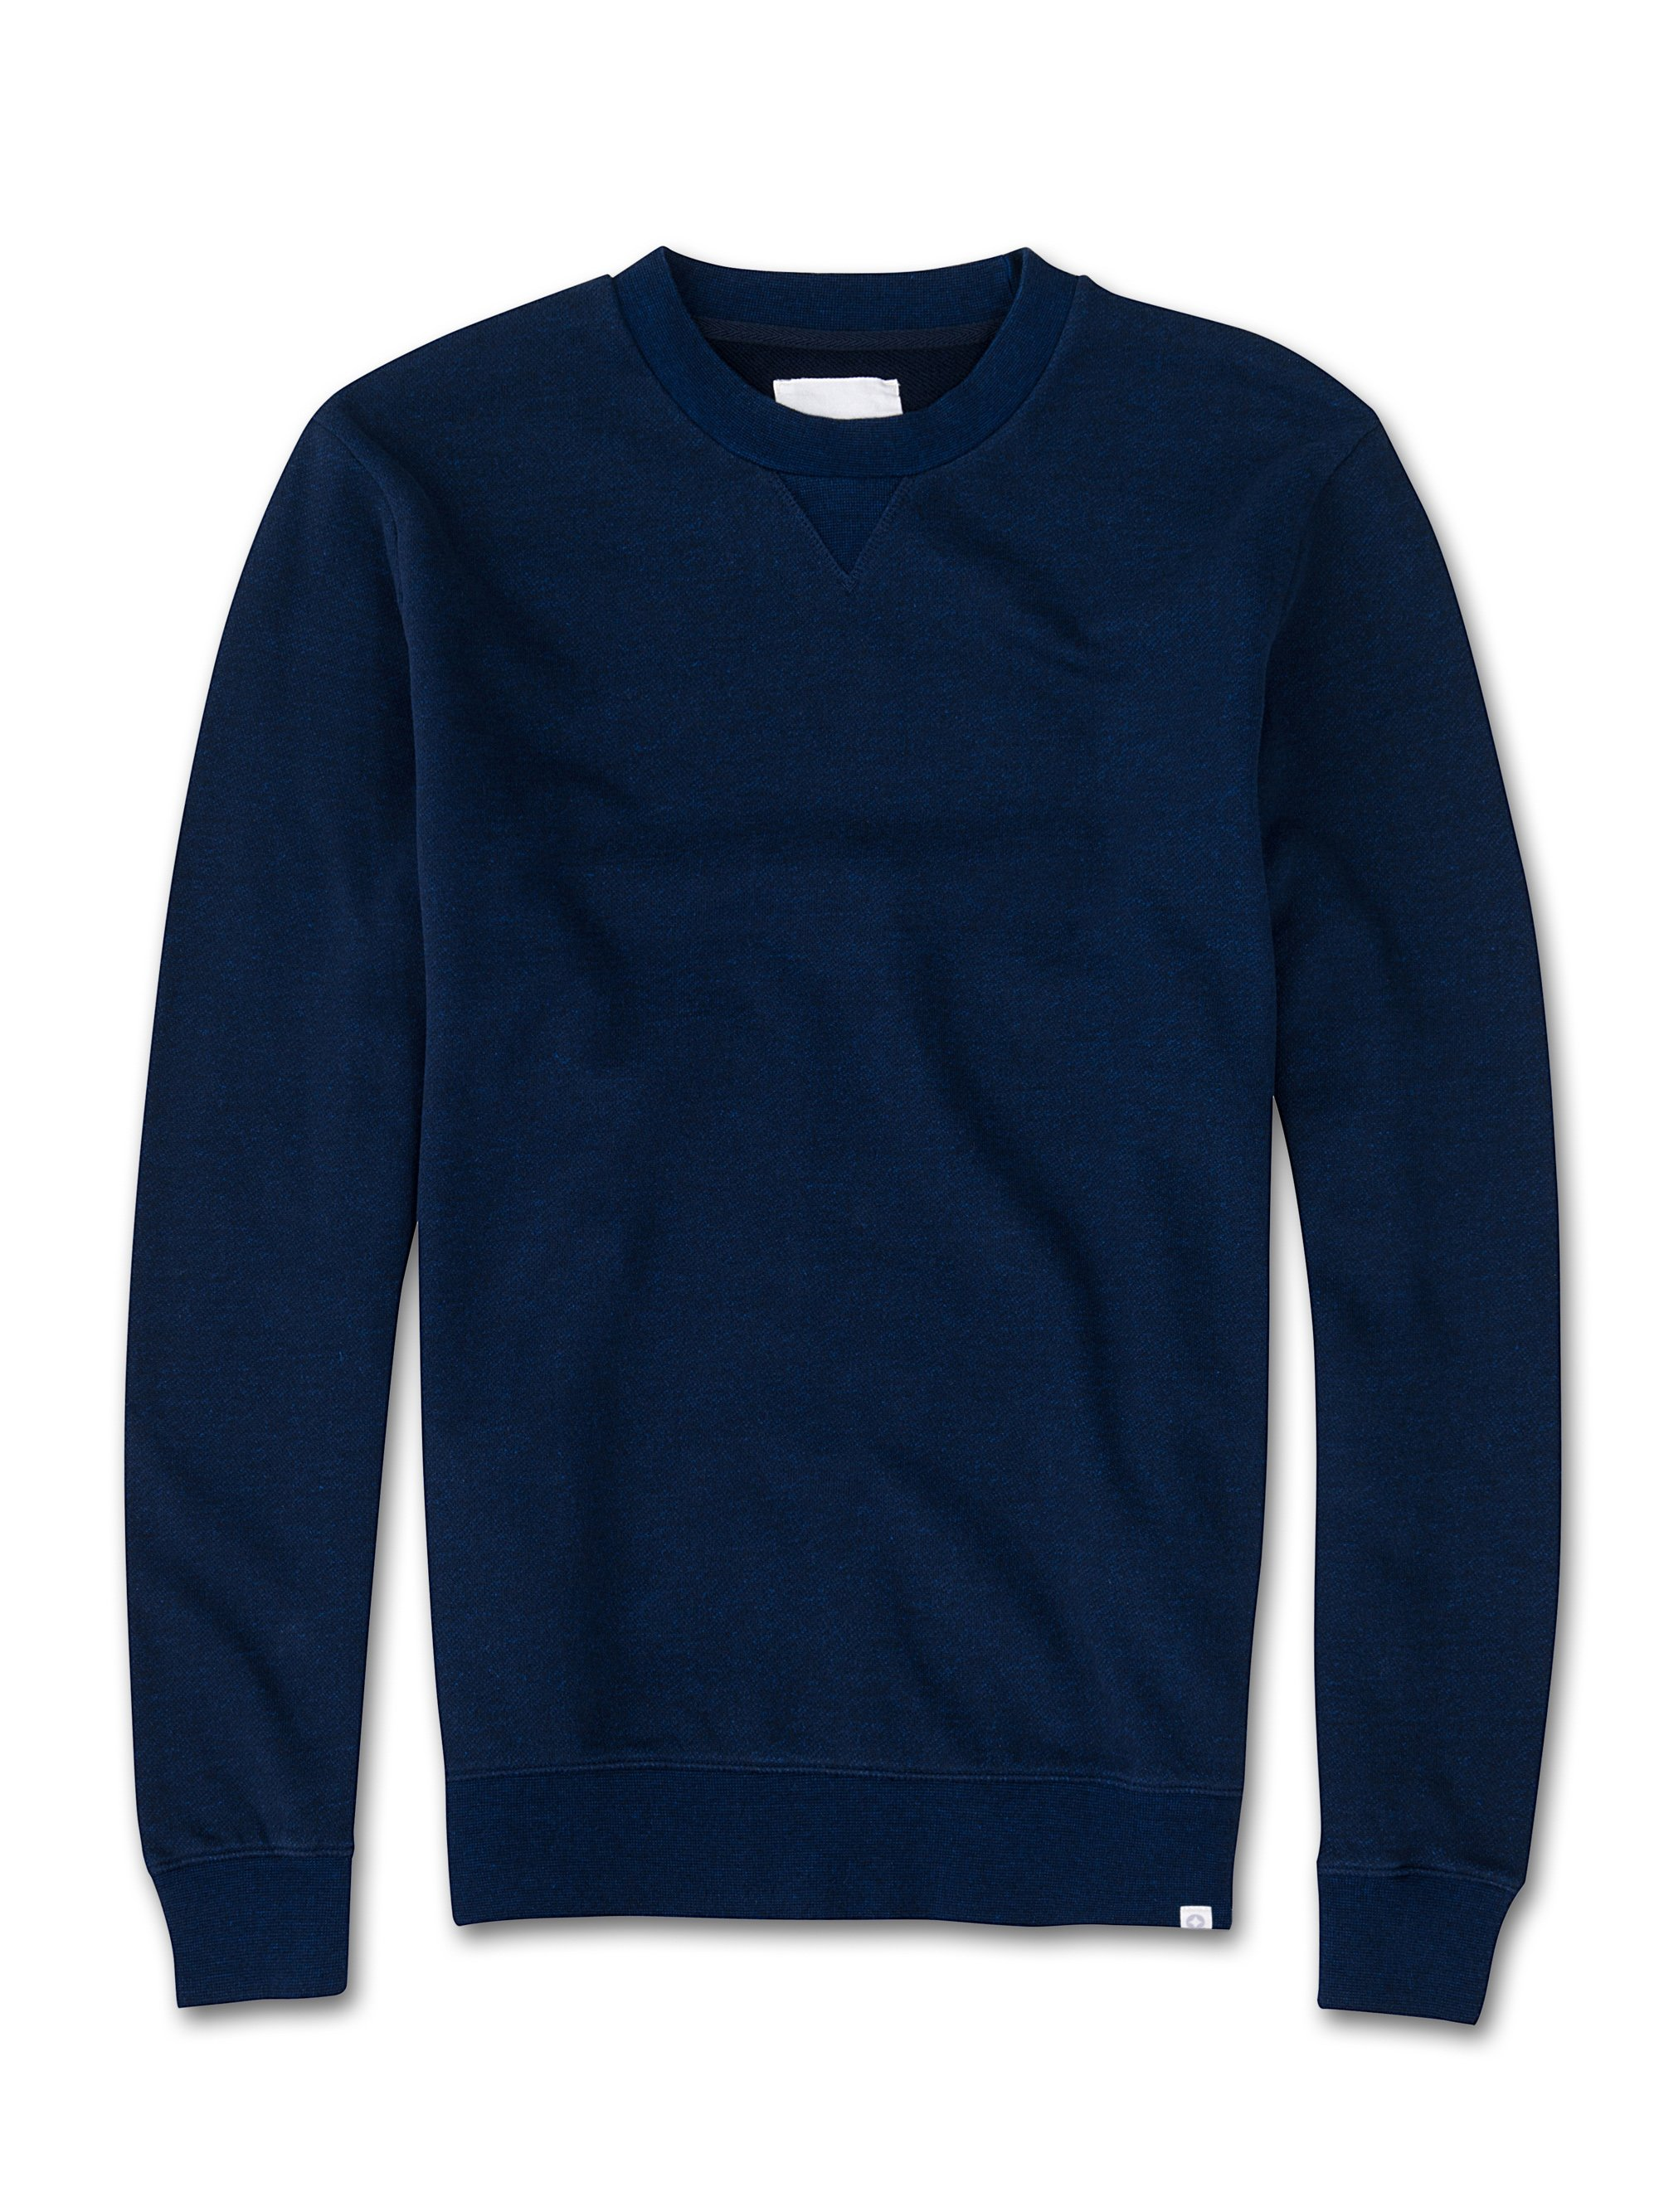 Men's Sweatshirt Devon Loopback Cotton Navy